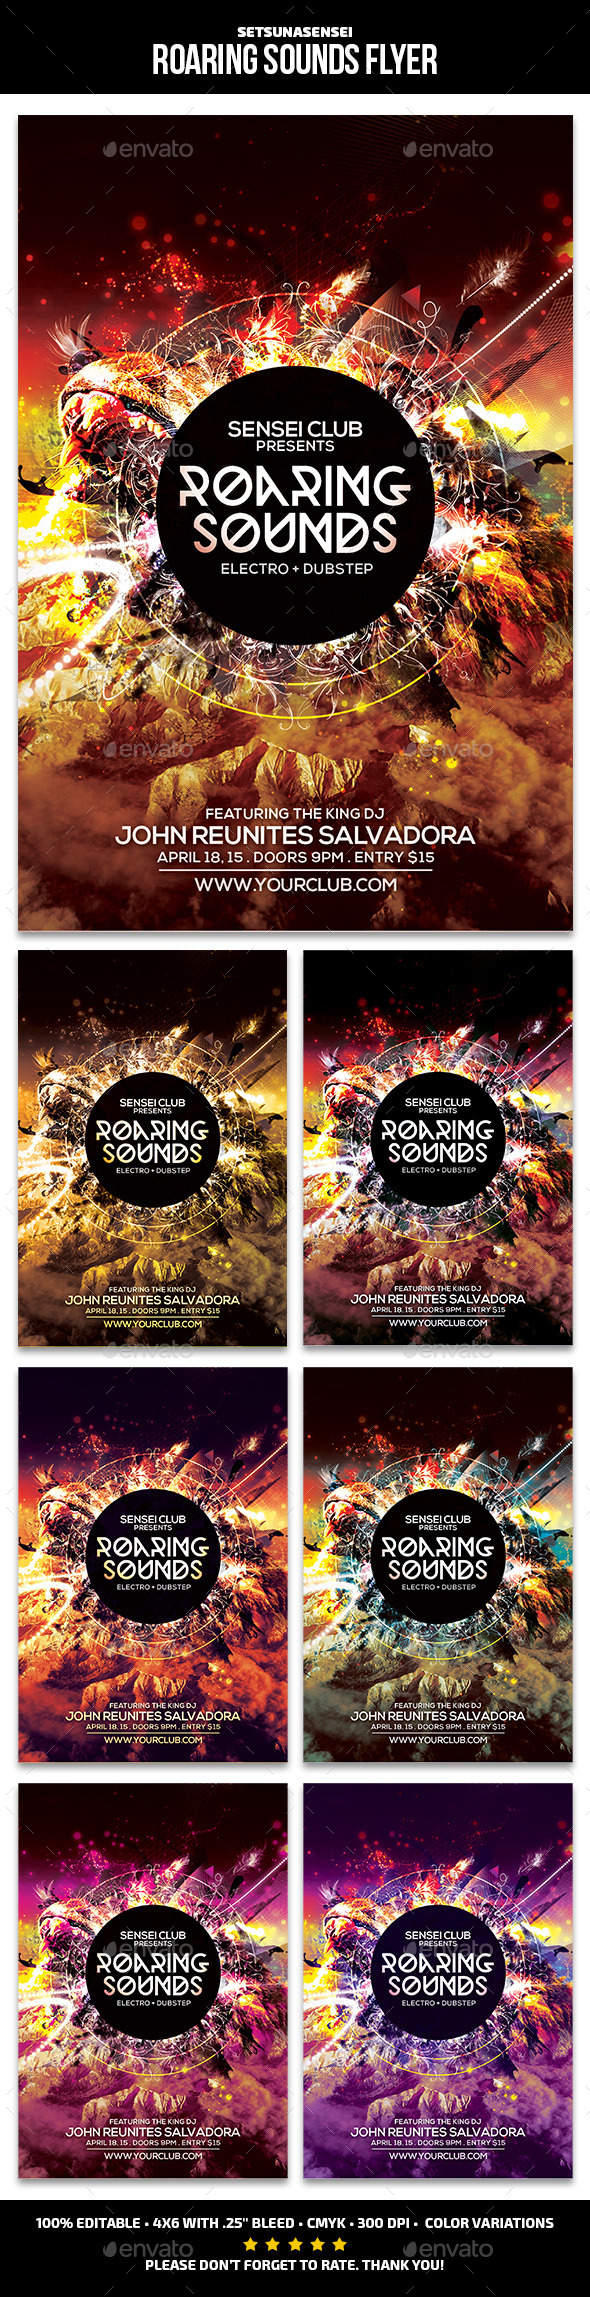 GraphicRiver Roaring Sounds Flyer 10938529